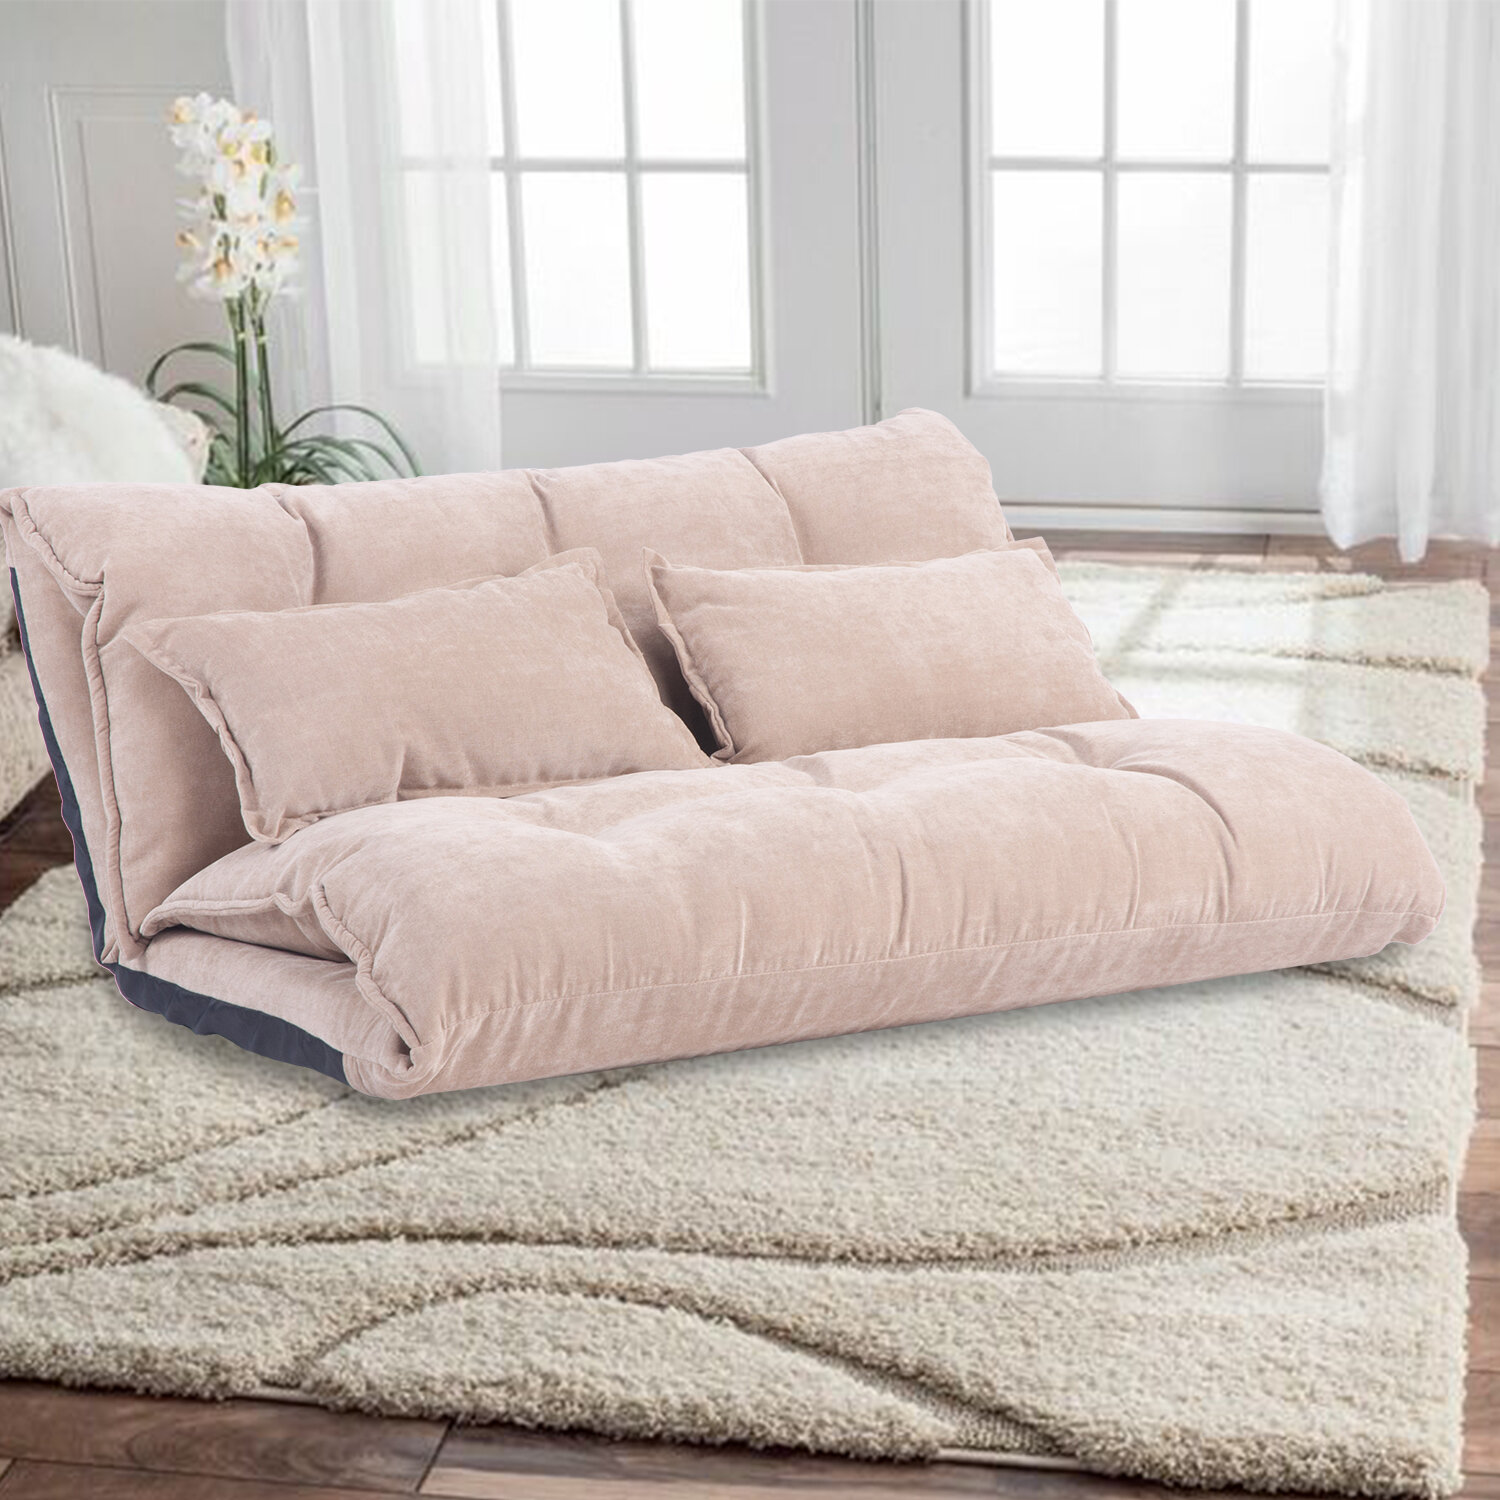 Leisure Sofa Bed Floor Chair With